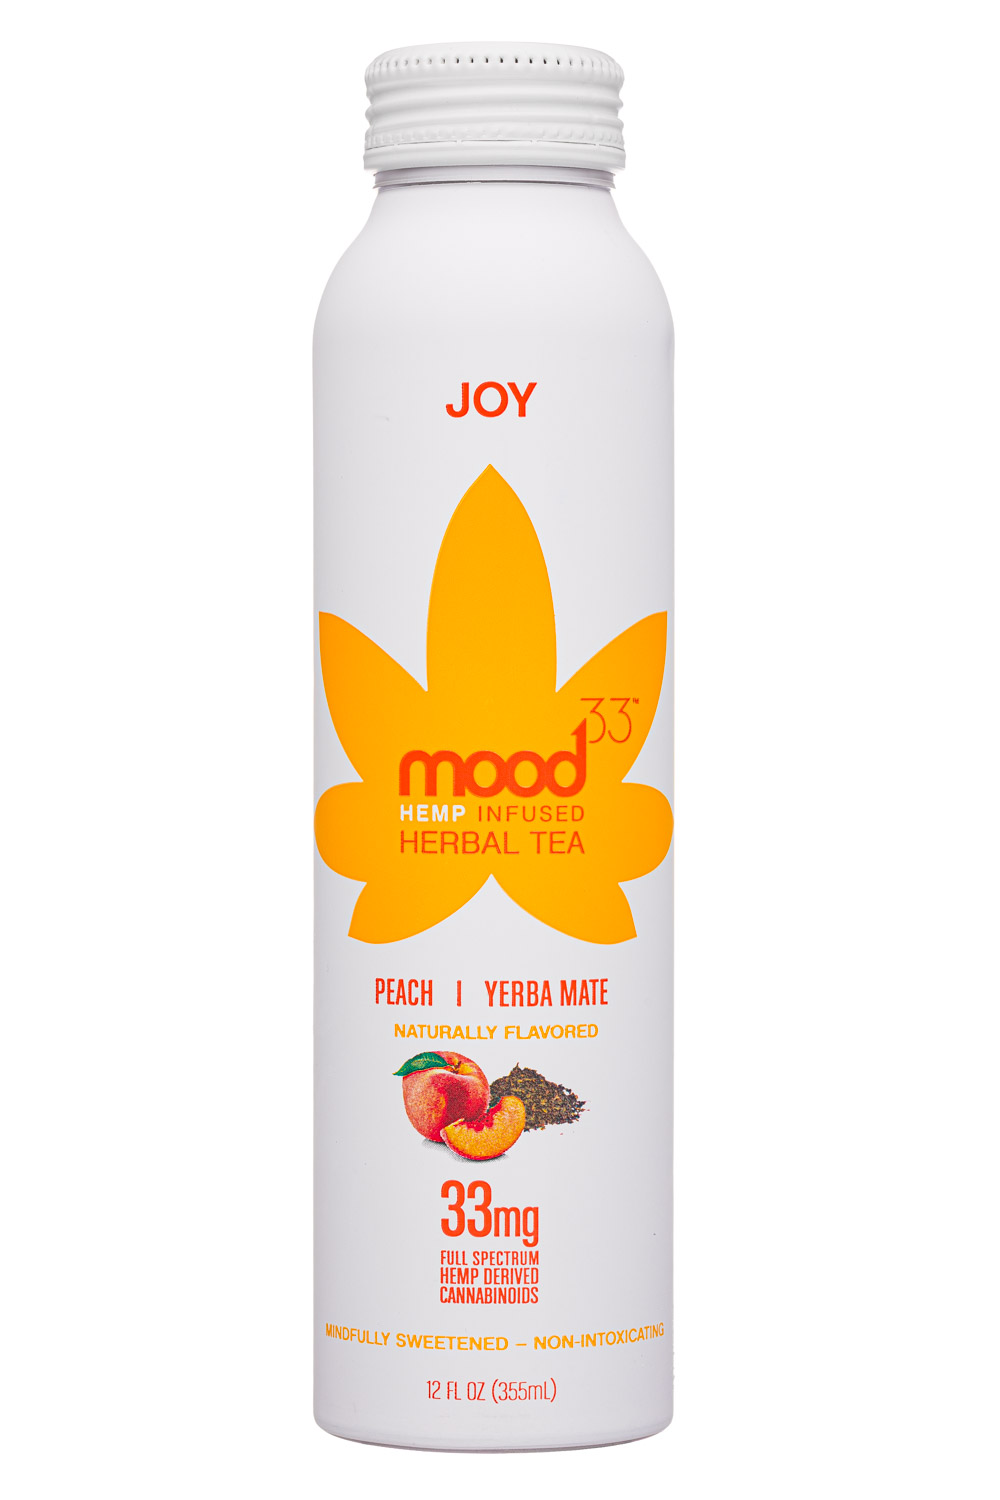 Mood33: Mood33-12oz-InfusedHerbalTea-Joy-Front